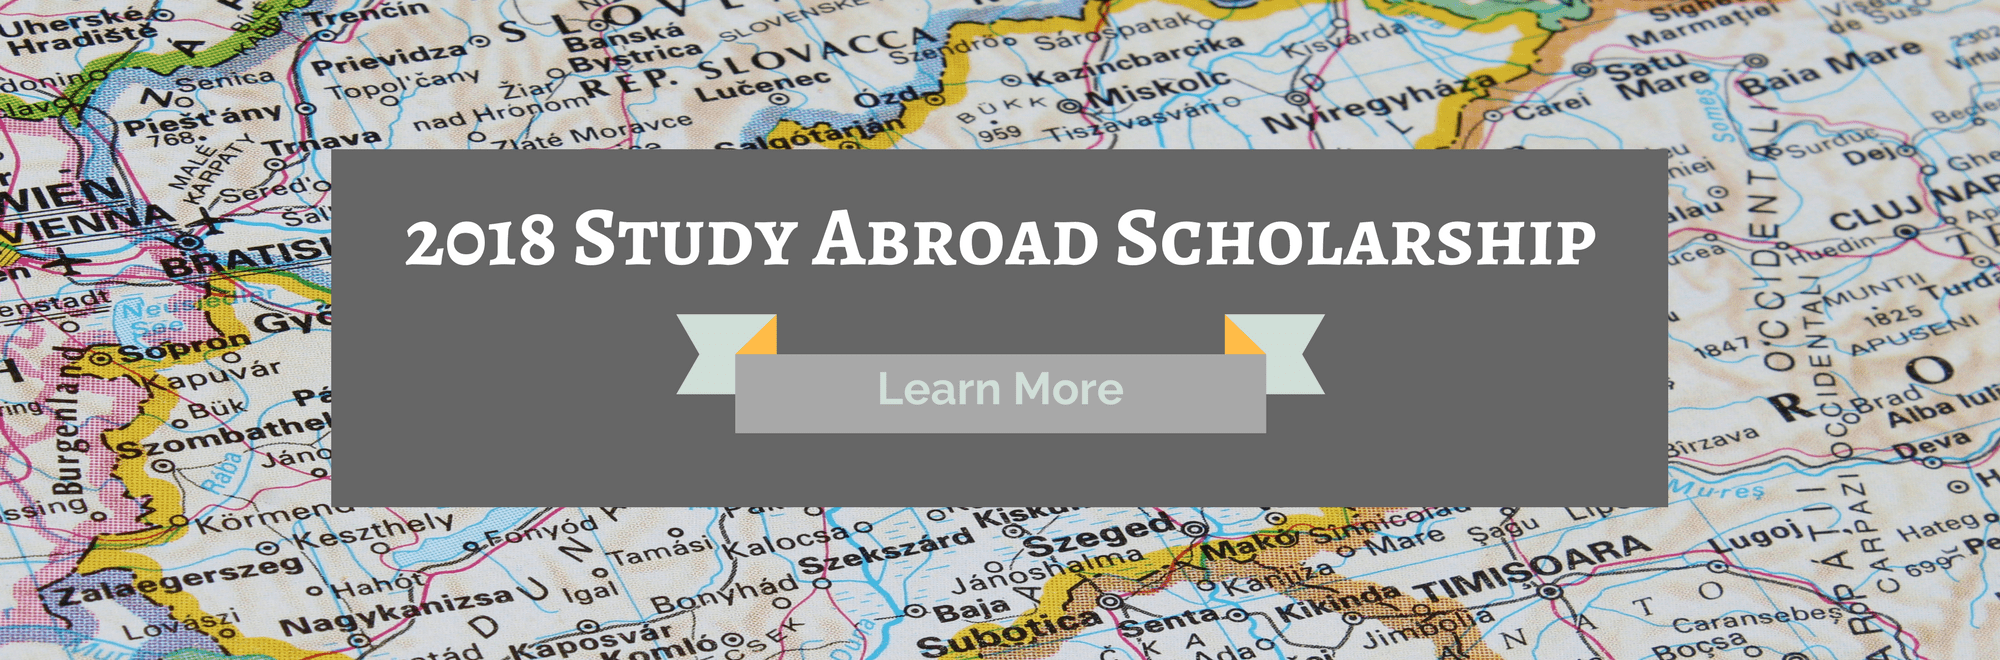 2018 Study Abroad Scholarship